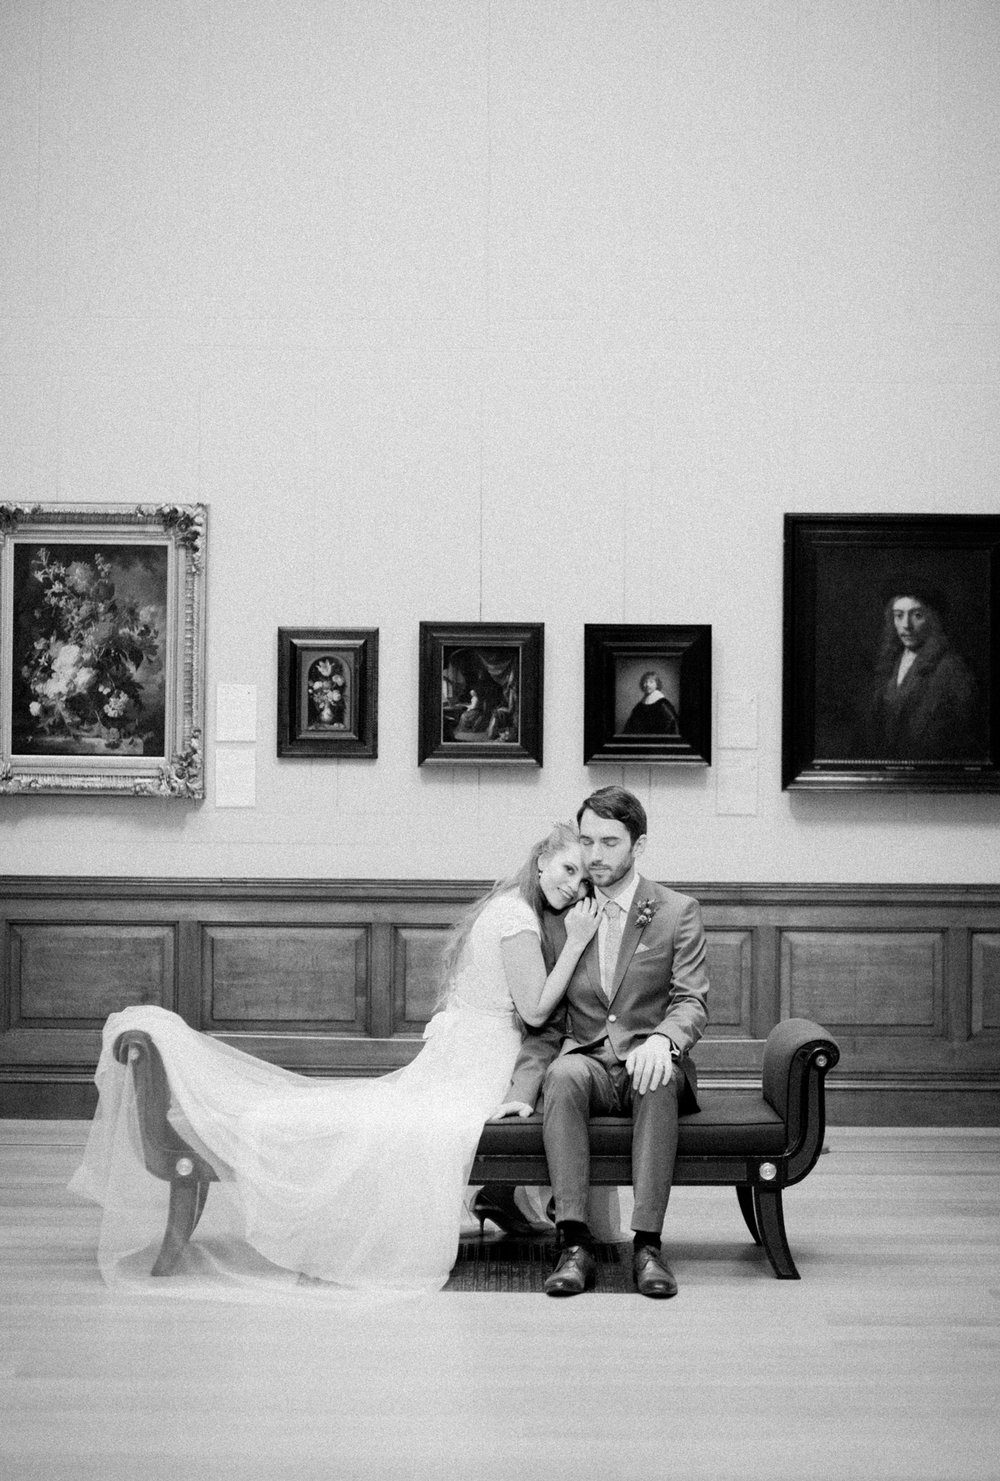 Romantic wedding in an art gallery